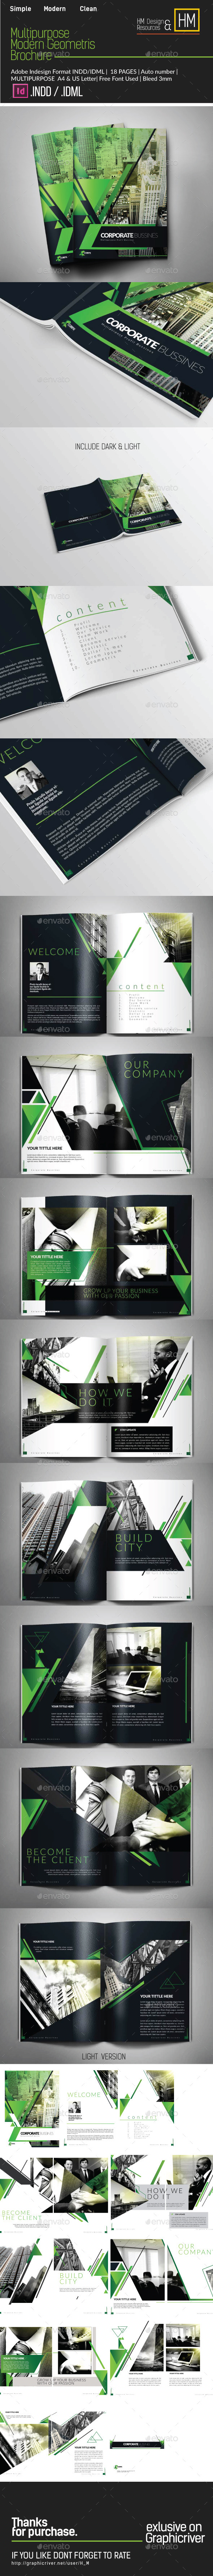 Multipurpose Modern Corporate Geometris Potrait - Corporate Brochures